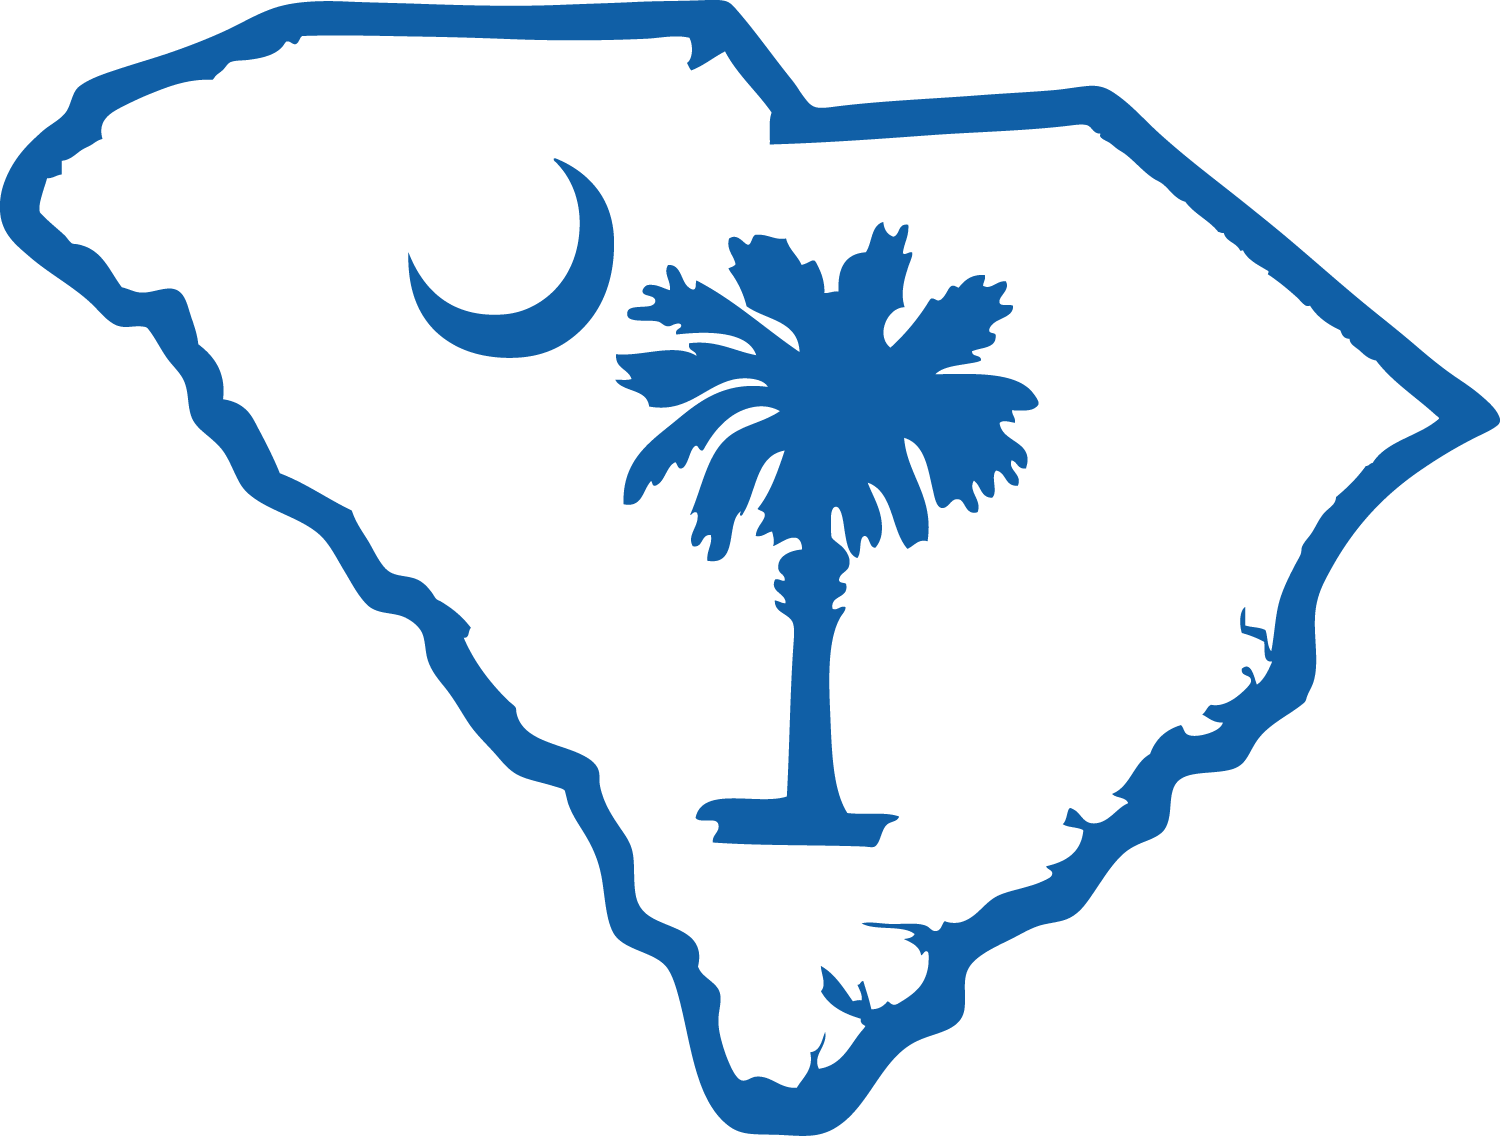 sc state flag clipart clipart suggest gamecocks clipart black and white gamecock clipart free